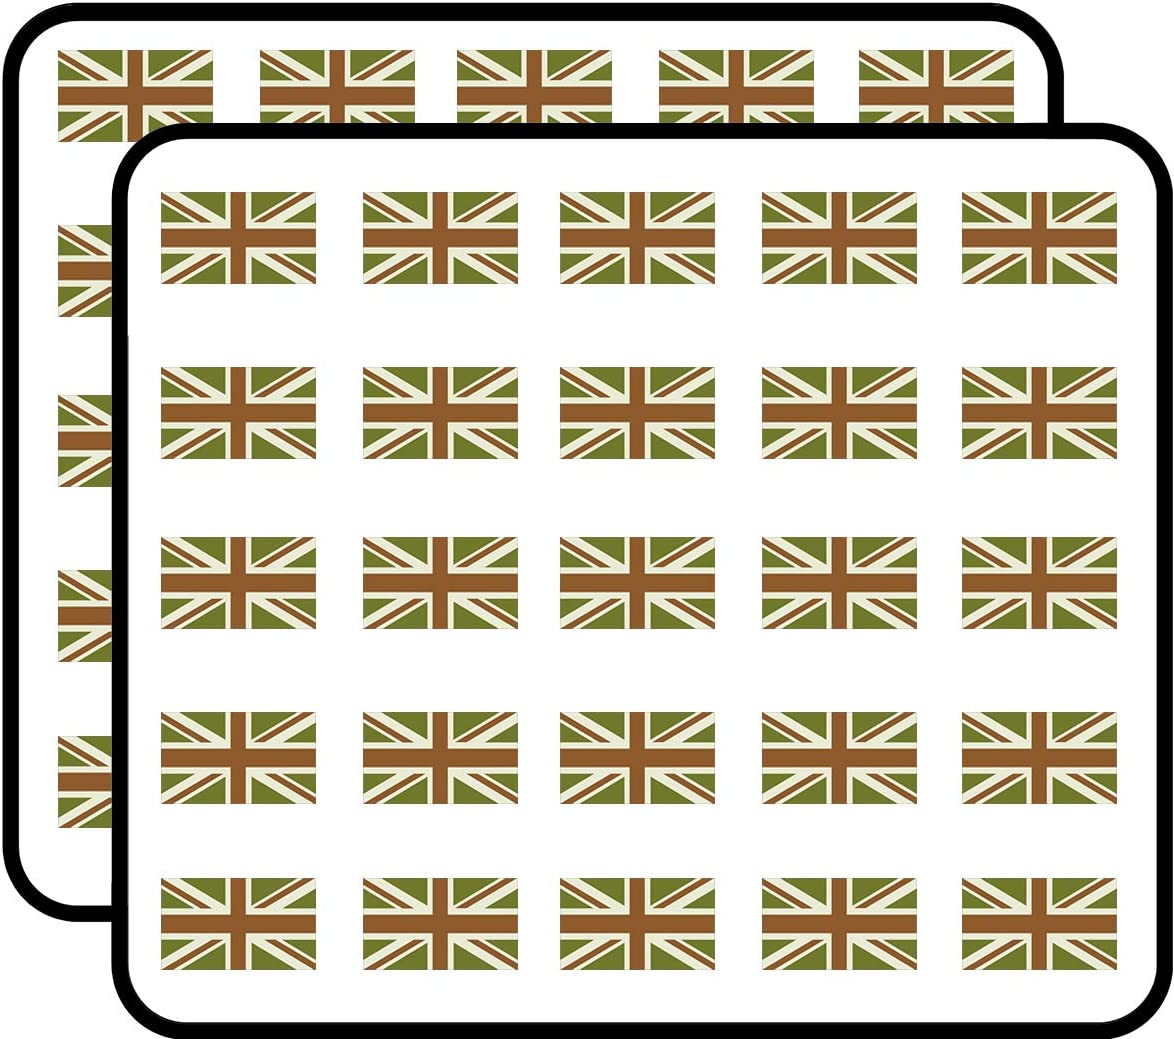 amazon com subdued colors union jack flag britain uk military sticker for scrapbooking calendars arts kids diy crafts album bullet journals amazon com